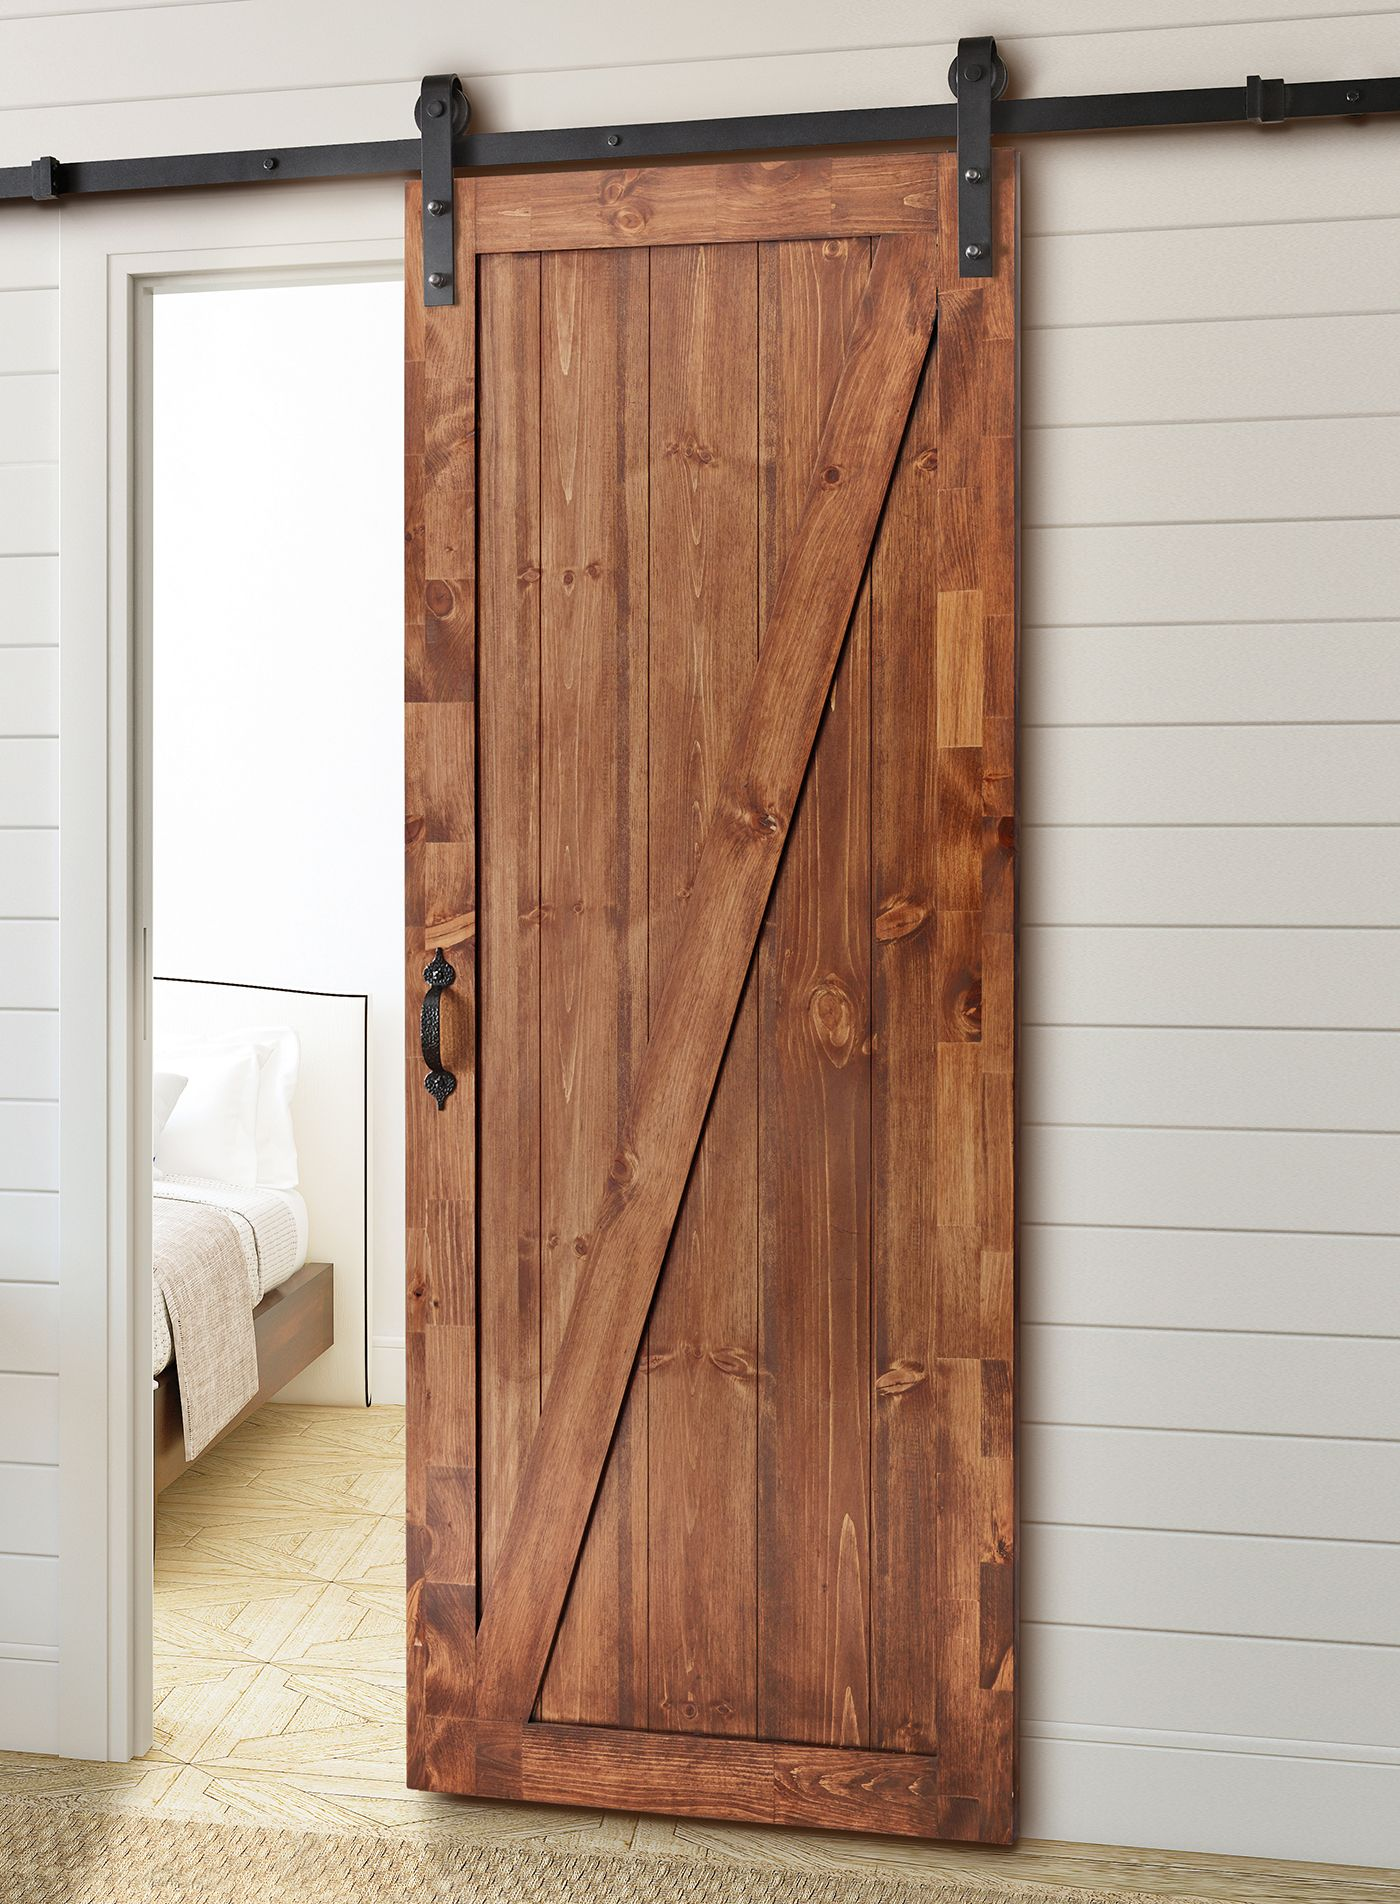 Perfect For Any Opening This Rustic Sliding Barn Door Kit Provides An Interesting And Elegant Tran Barn Door Kit Sliding Barn Door Hardware Barn Doors Sliding